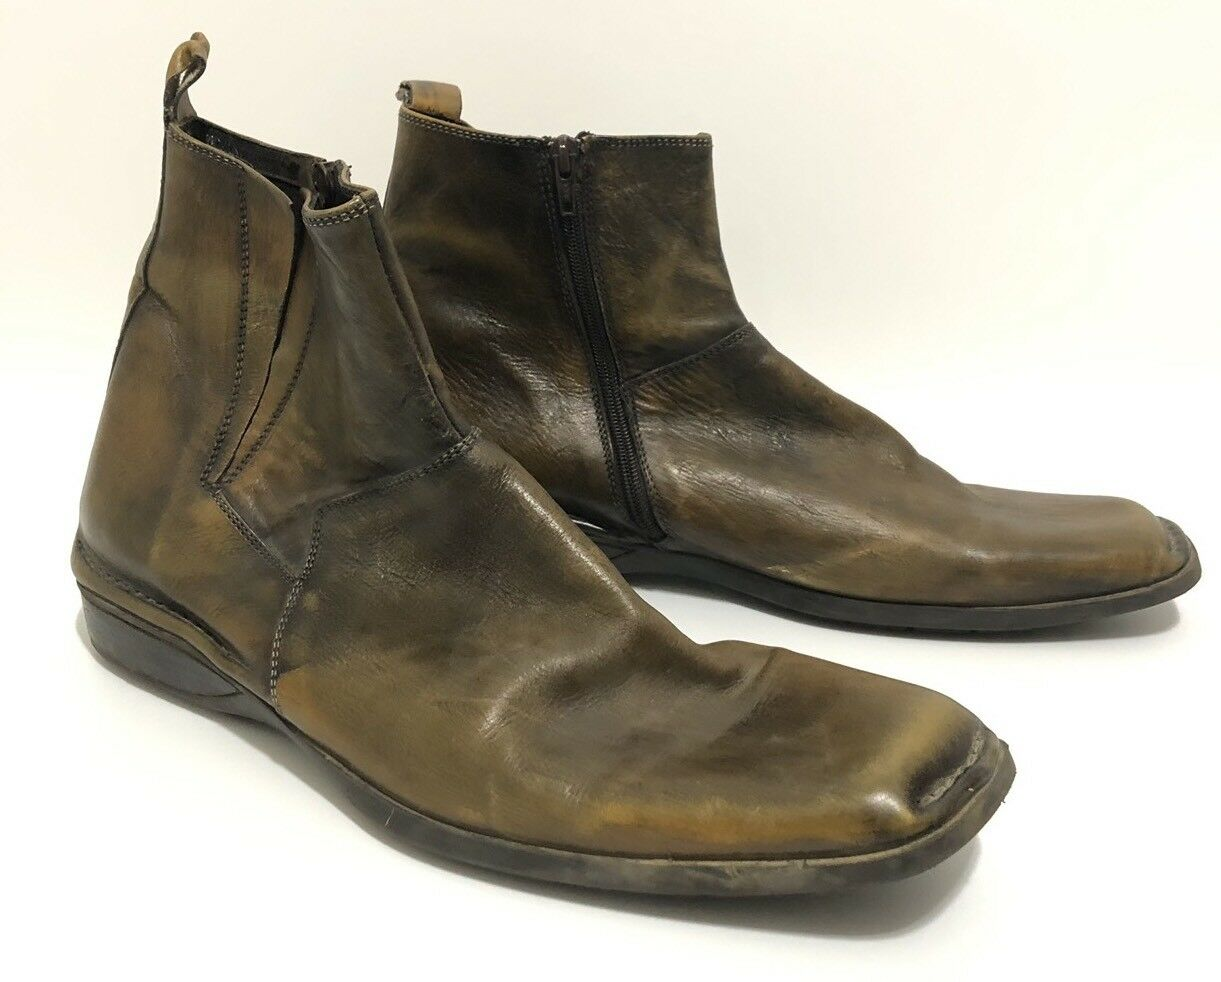 Leverage Wardrobe Shoes Bacco Bucci Brown Leather Ankle Chelsea Boots Size 12